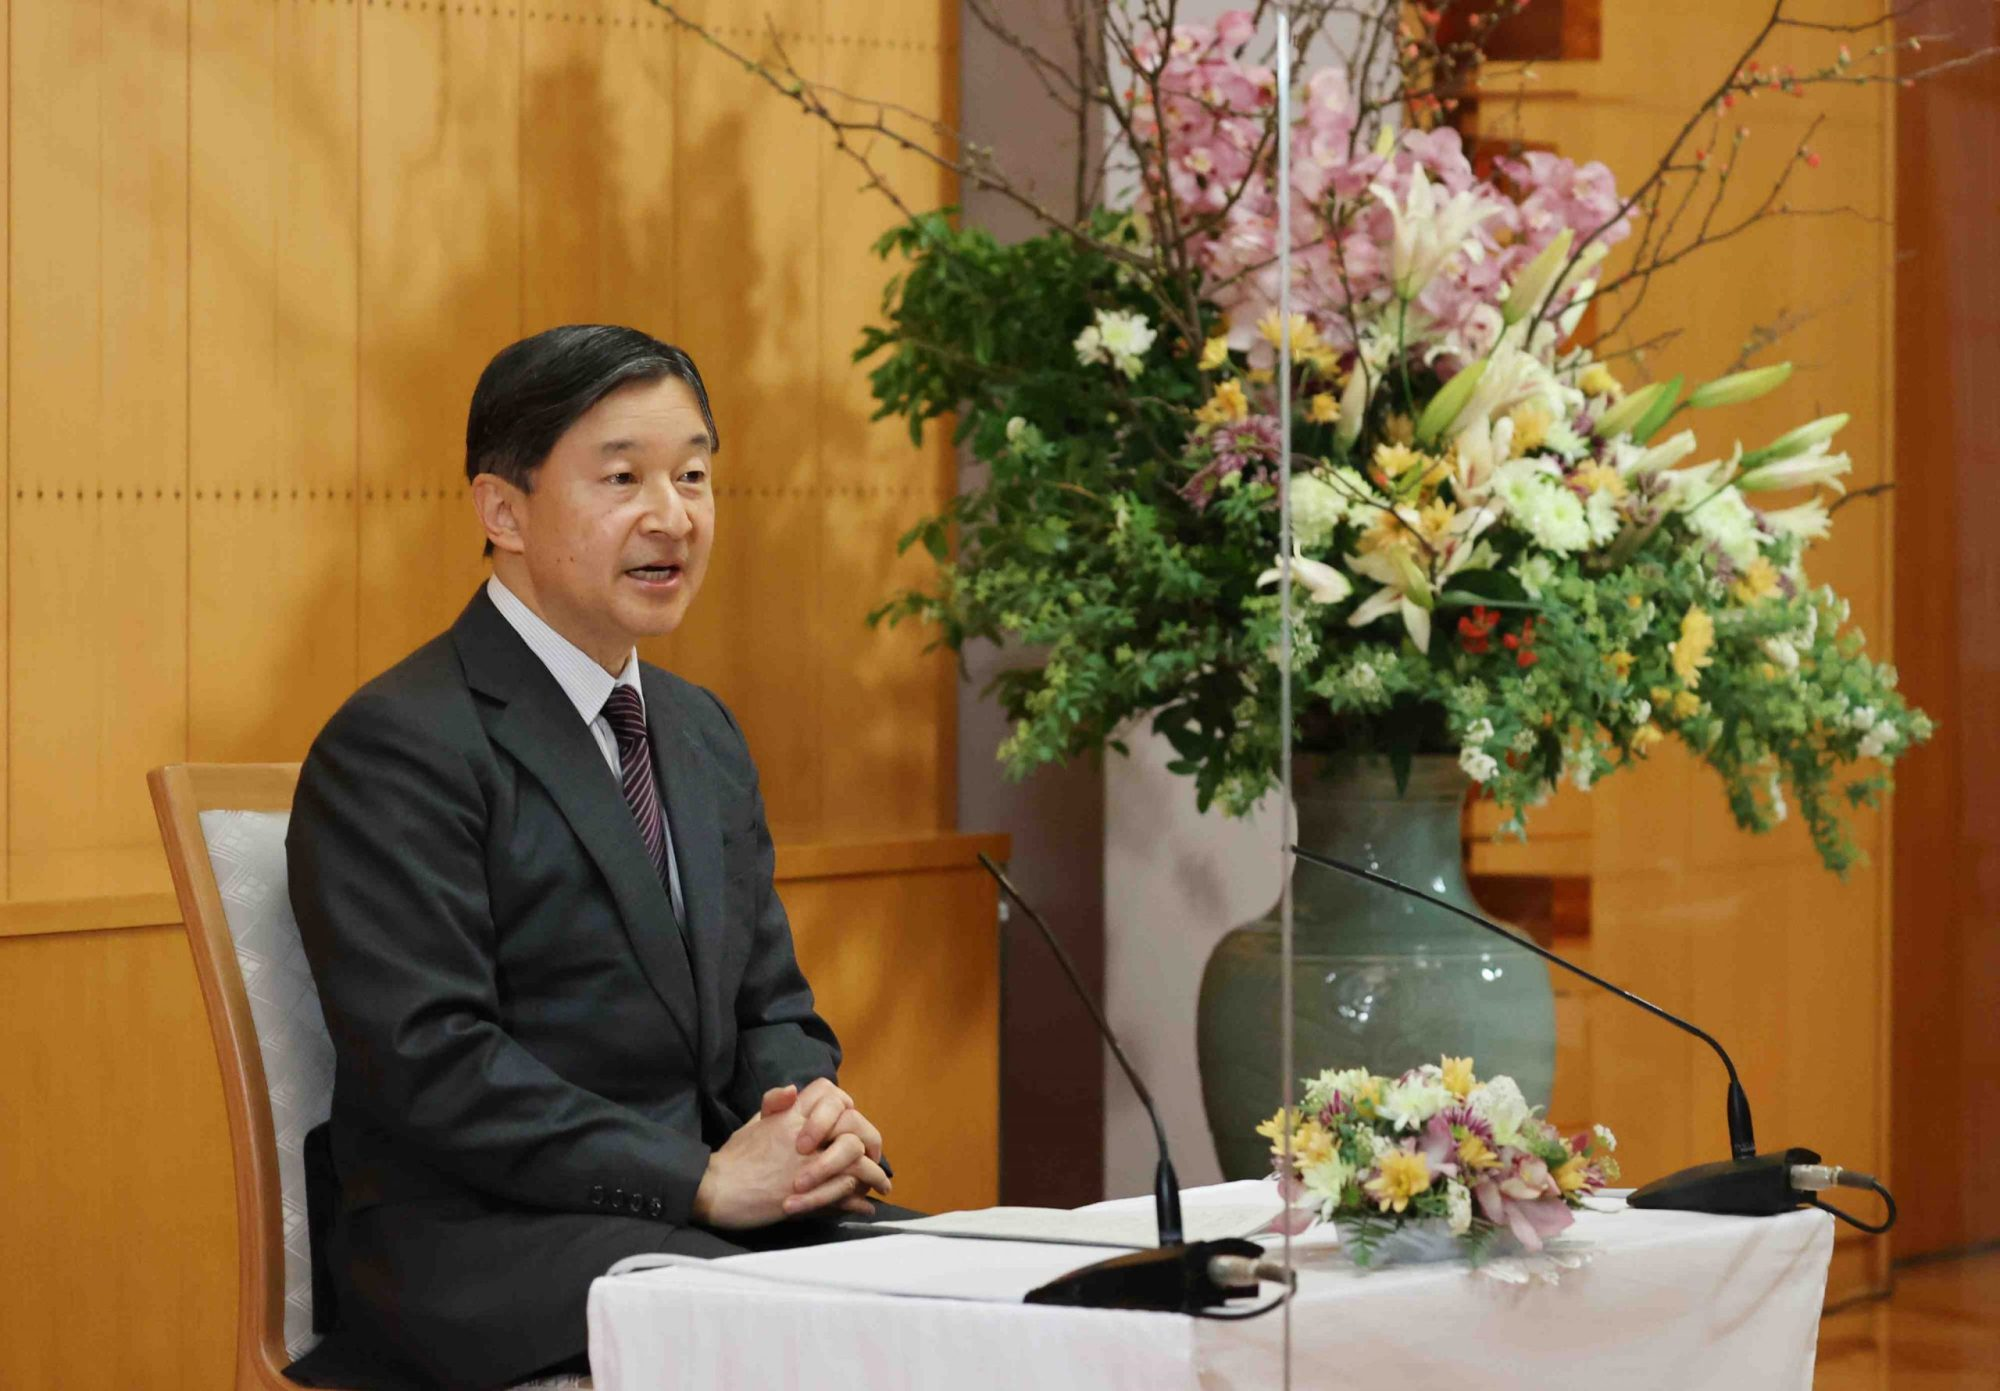 hight resolution of We Will Overcome': Emperor Naruhito's Message of Hope on His 61st Birthday    JAPAN Forward